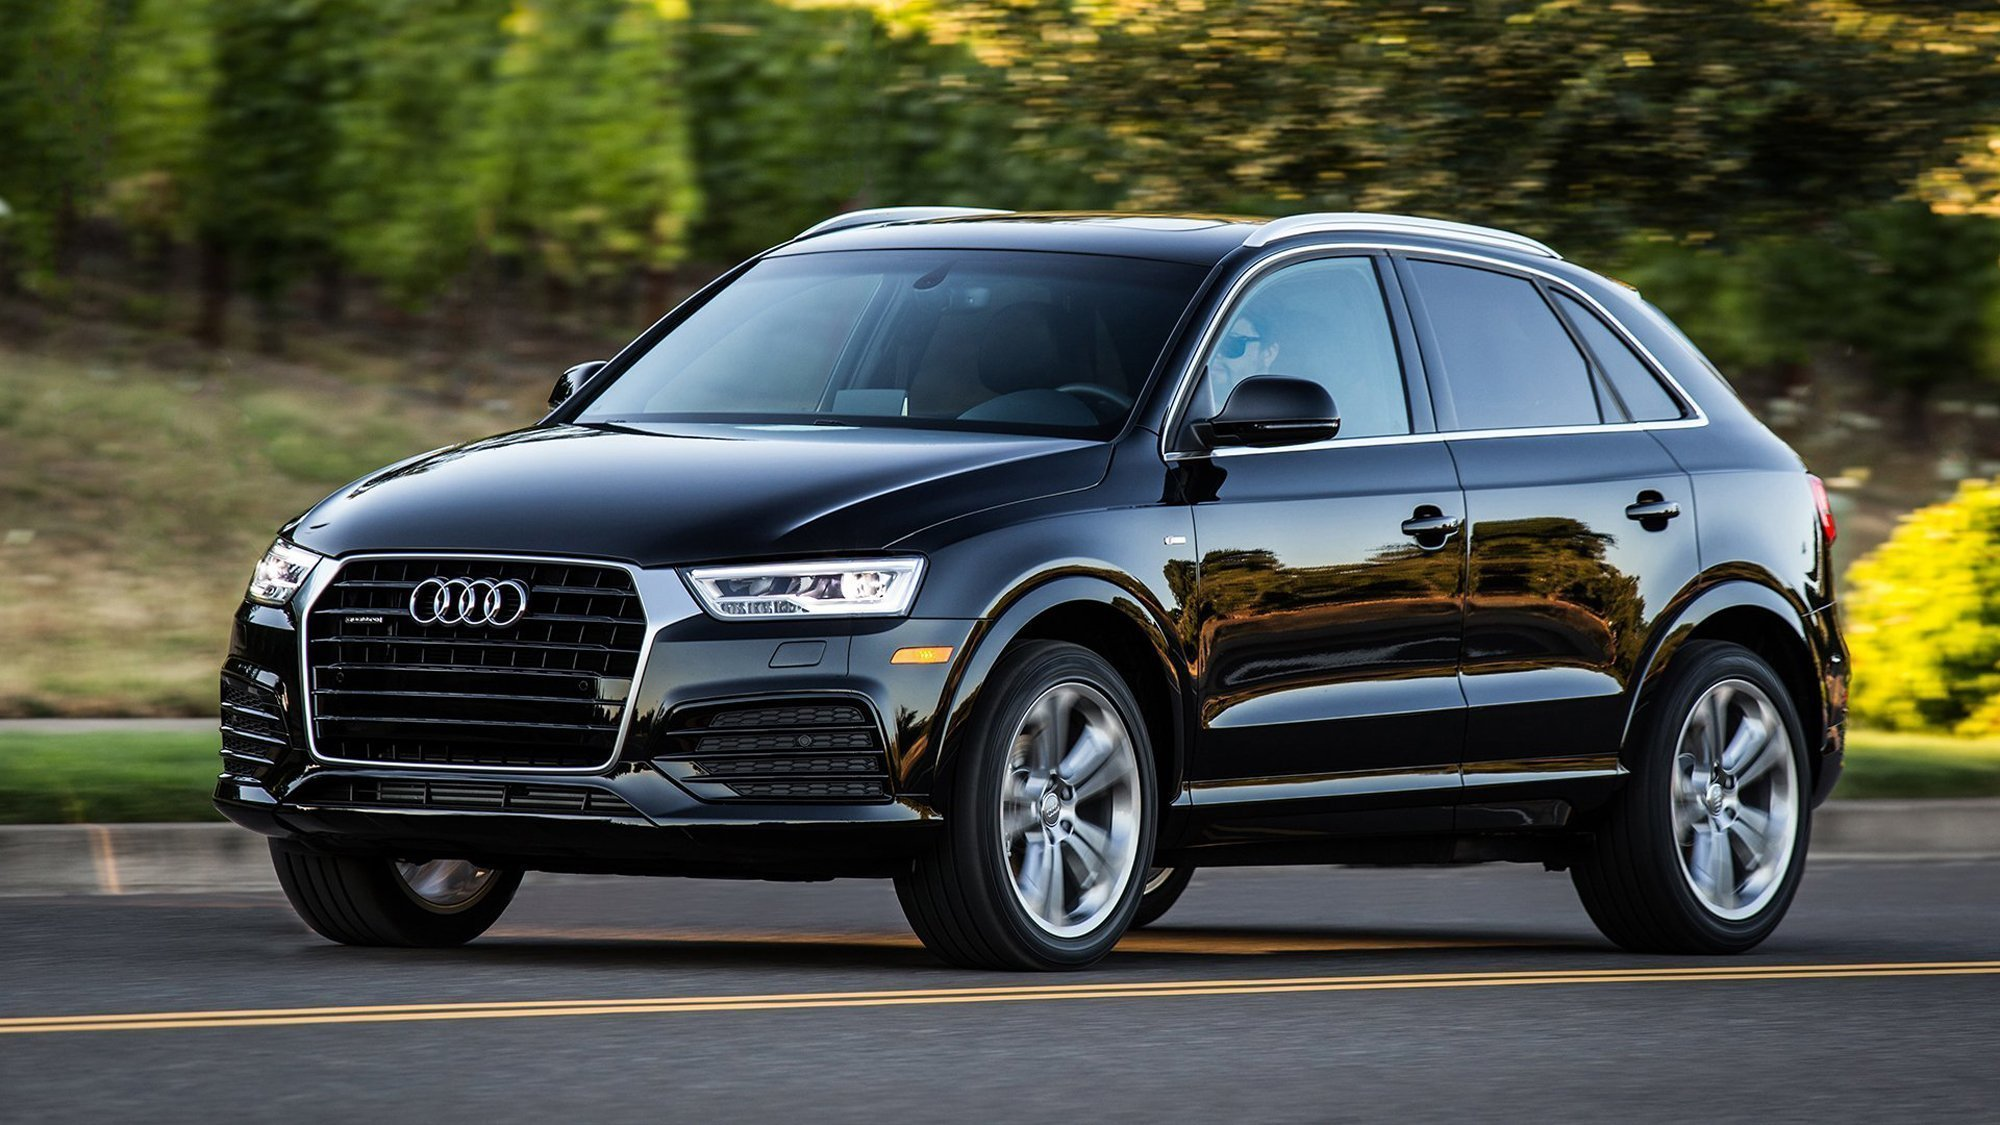 2016 Q3 Suv Delivers Affordable Turbocharged Audi Prestige The San Go Union Tribune